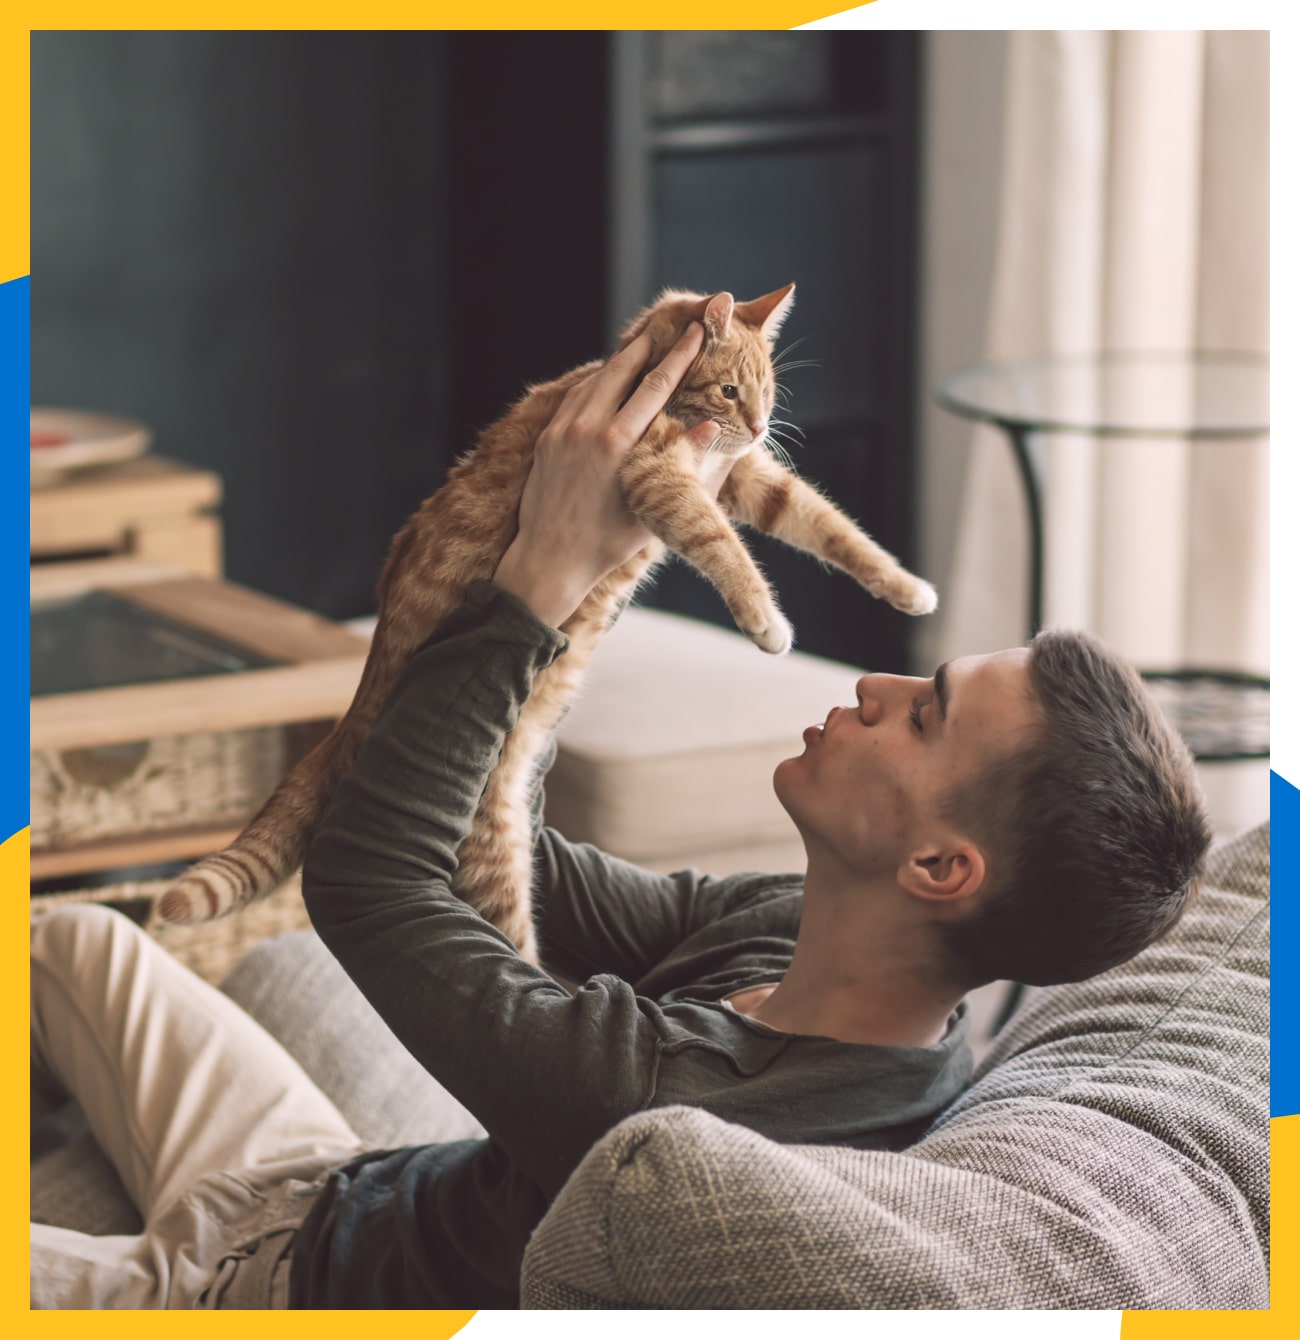 A young man, holding his cat up in the air and making a kiss face